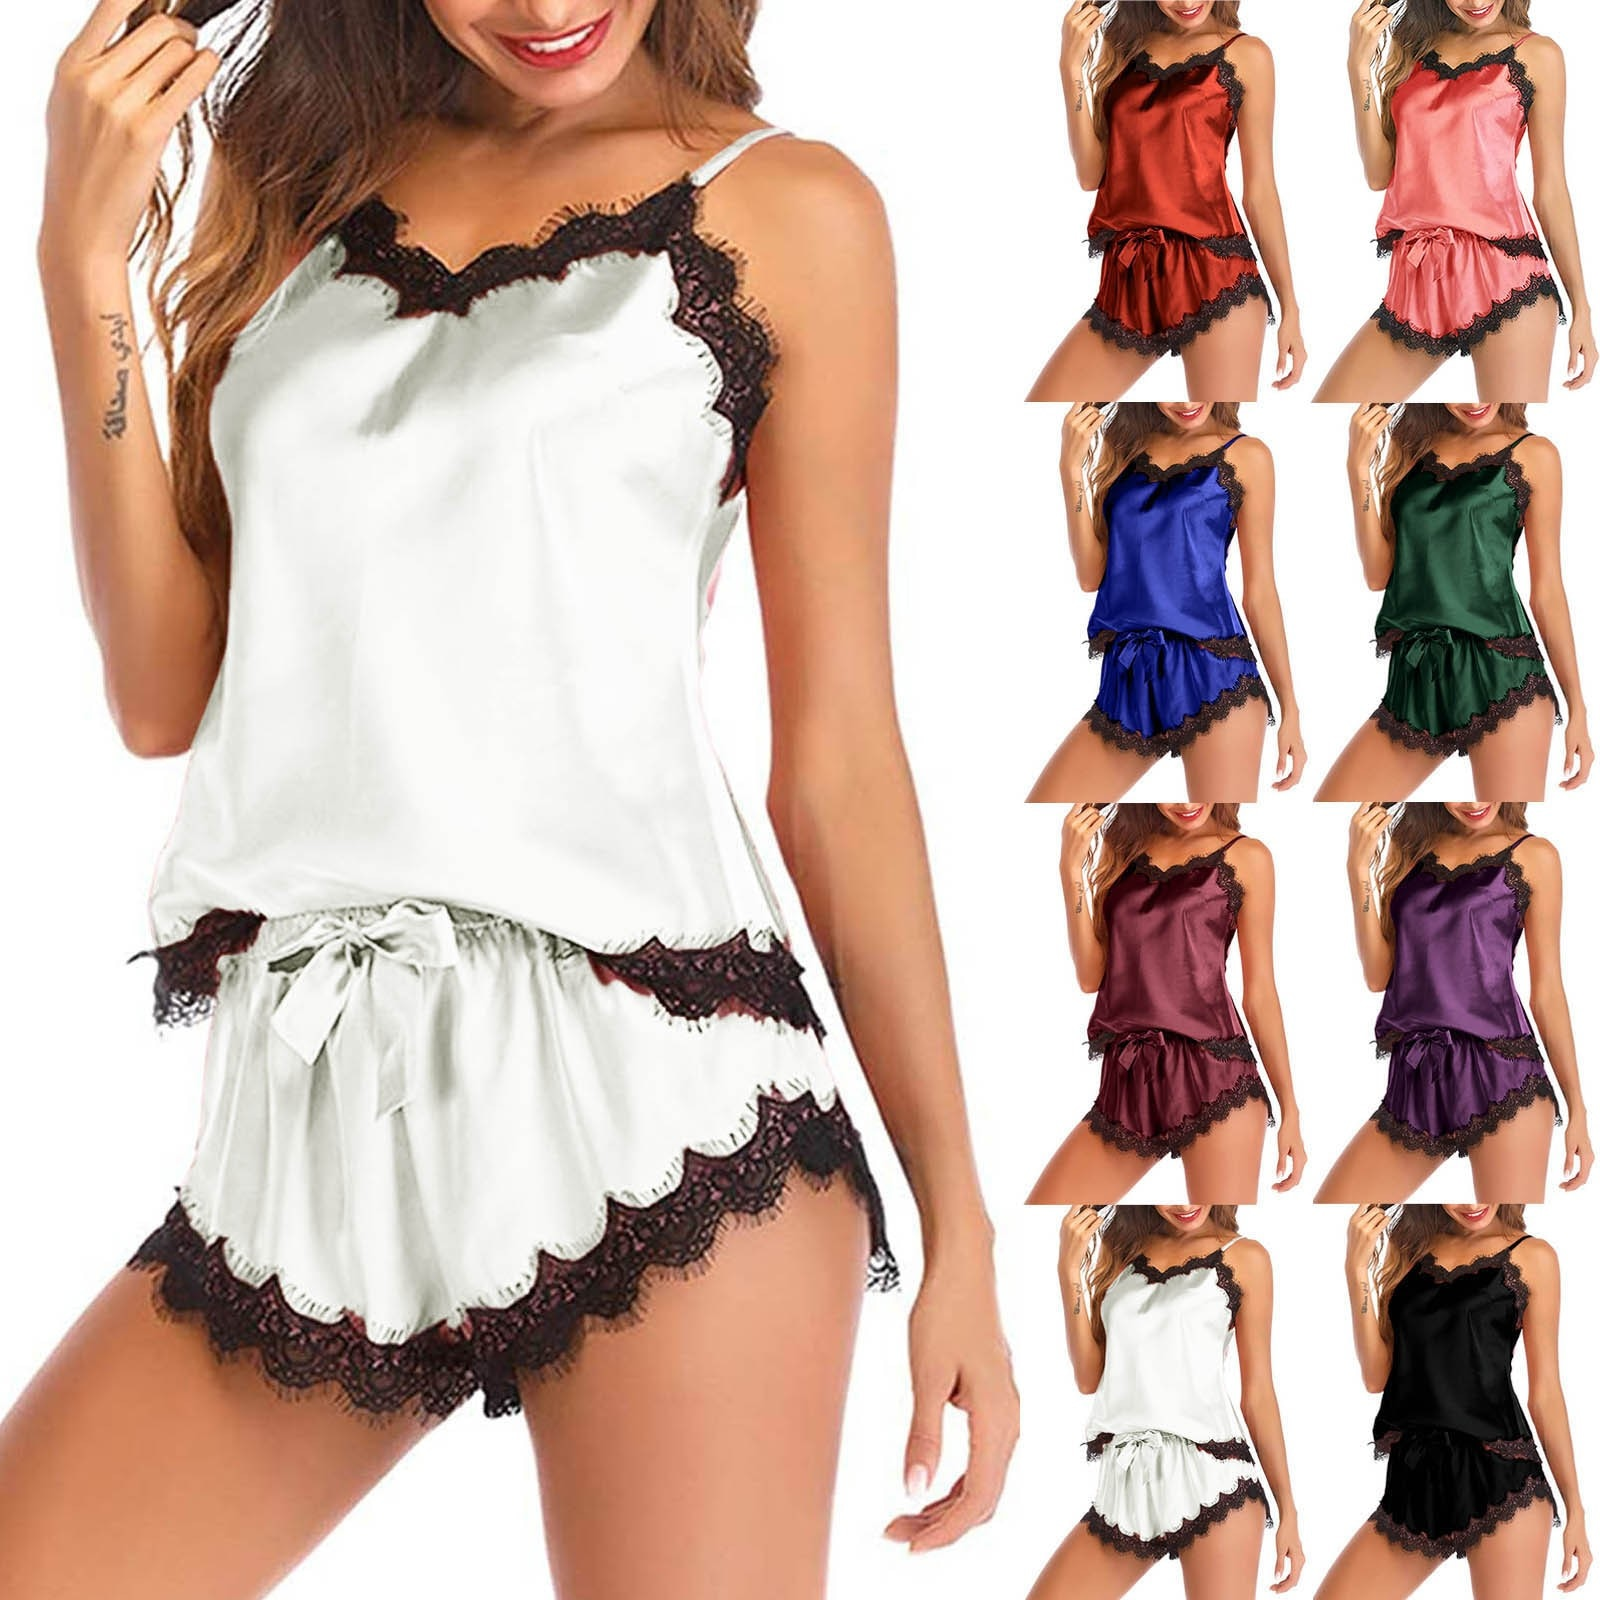 Women comfortable pajamas Sleepwear Sleeveless Strap Nightwear Lace Trim Satin Cami Top Pajama Sets Пижамный комплект